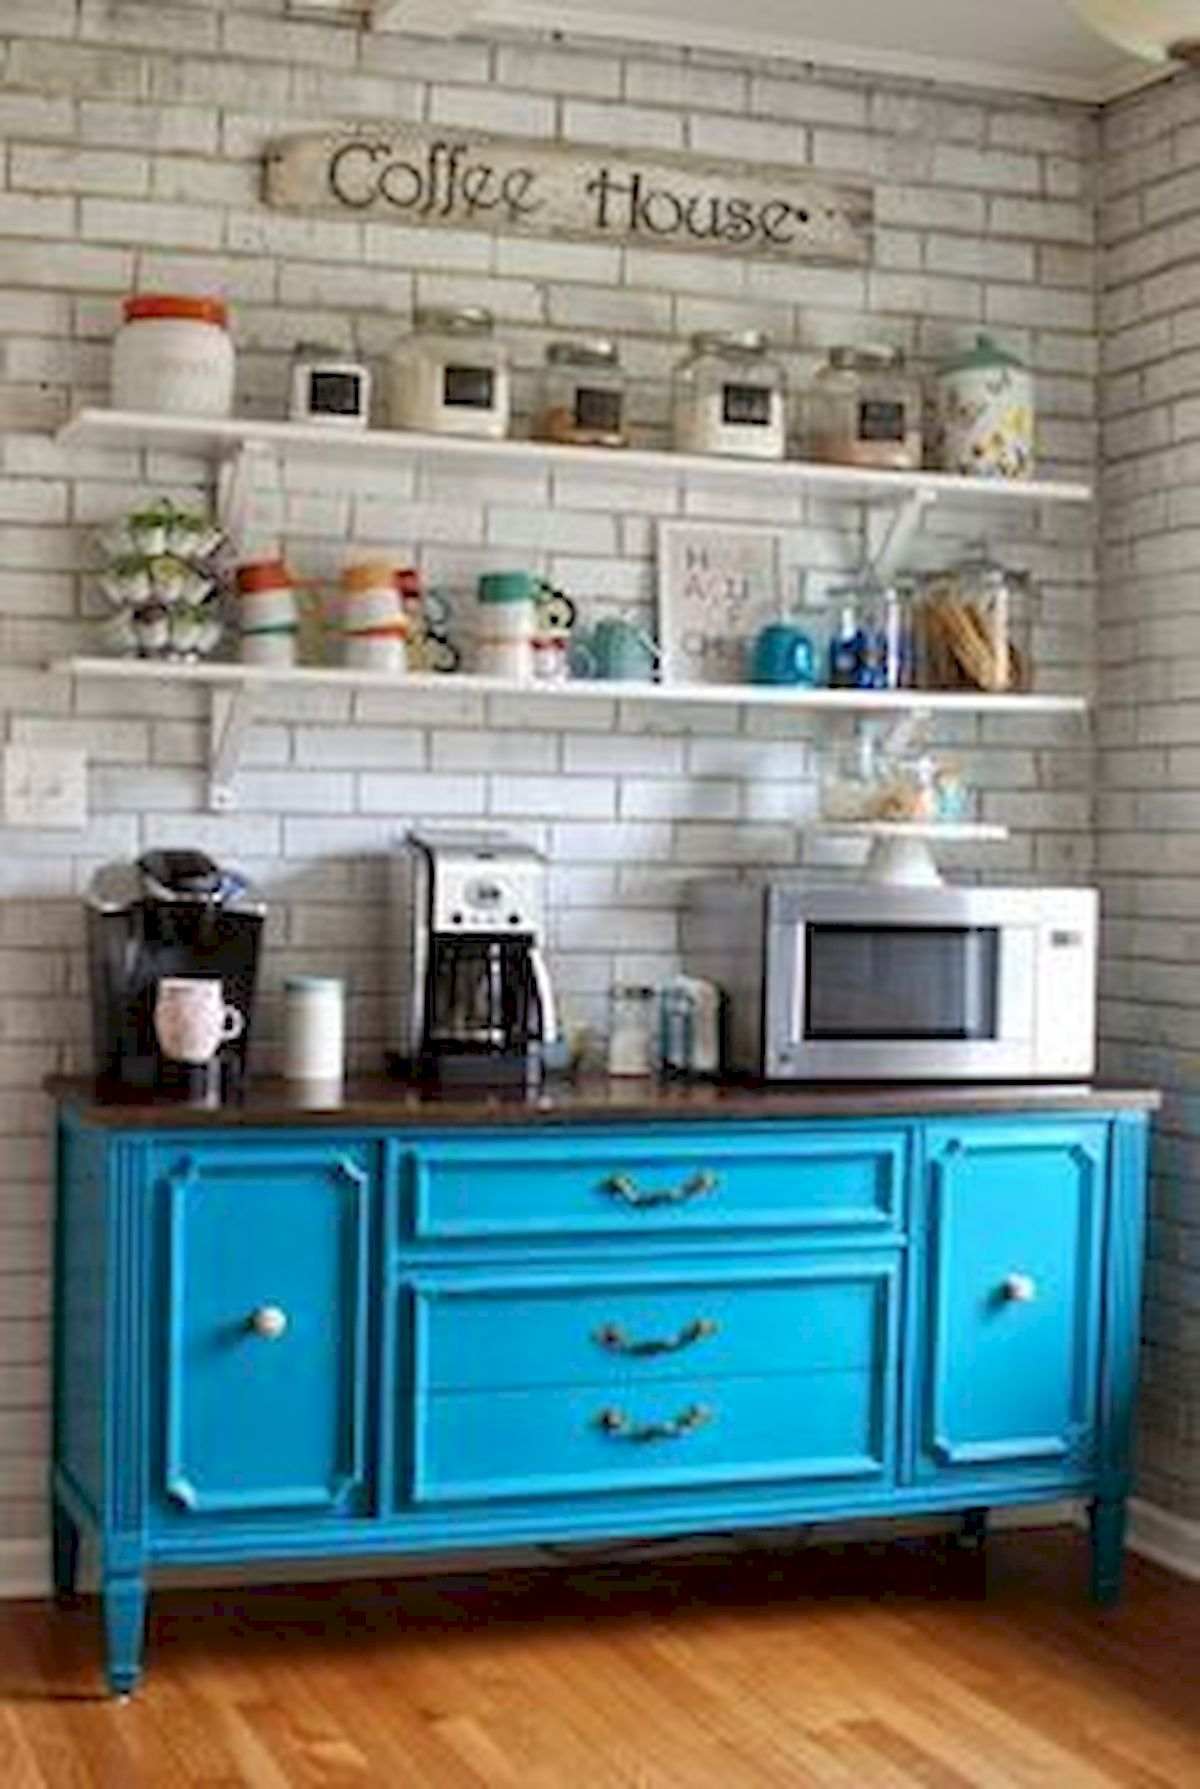 60 Best Mini Coffee Bar Ideas for Your Home (18)